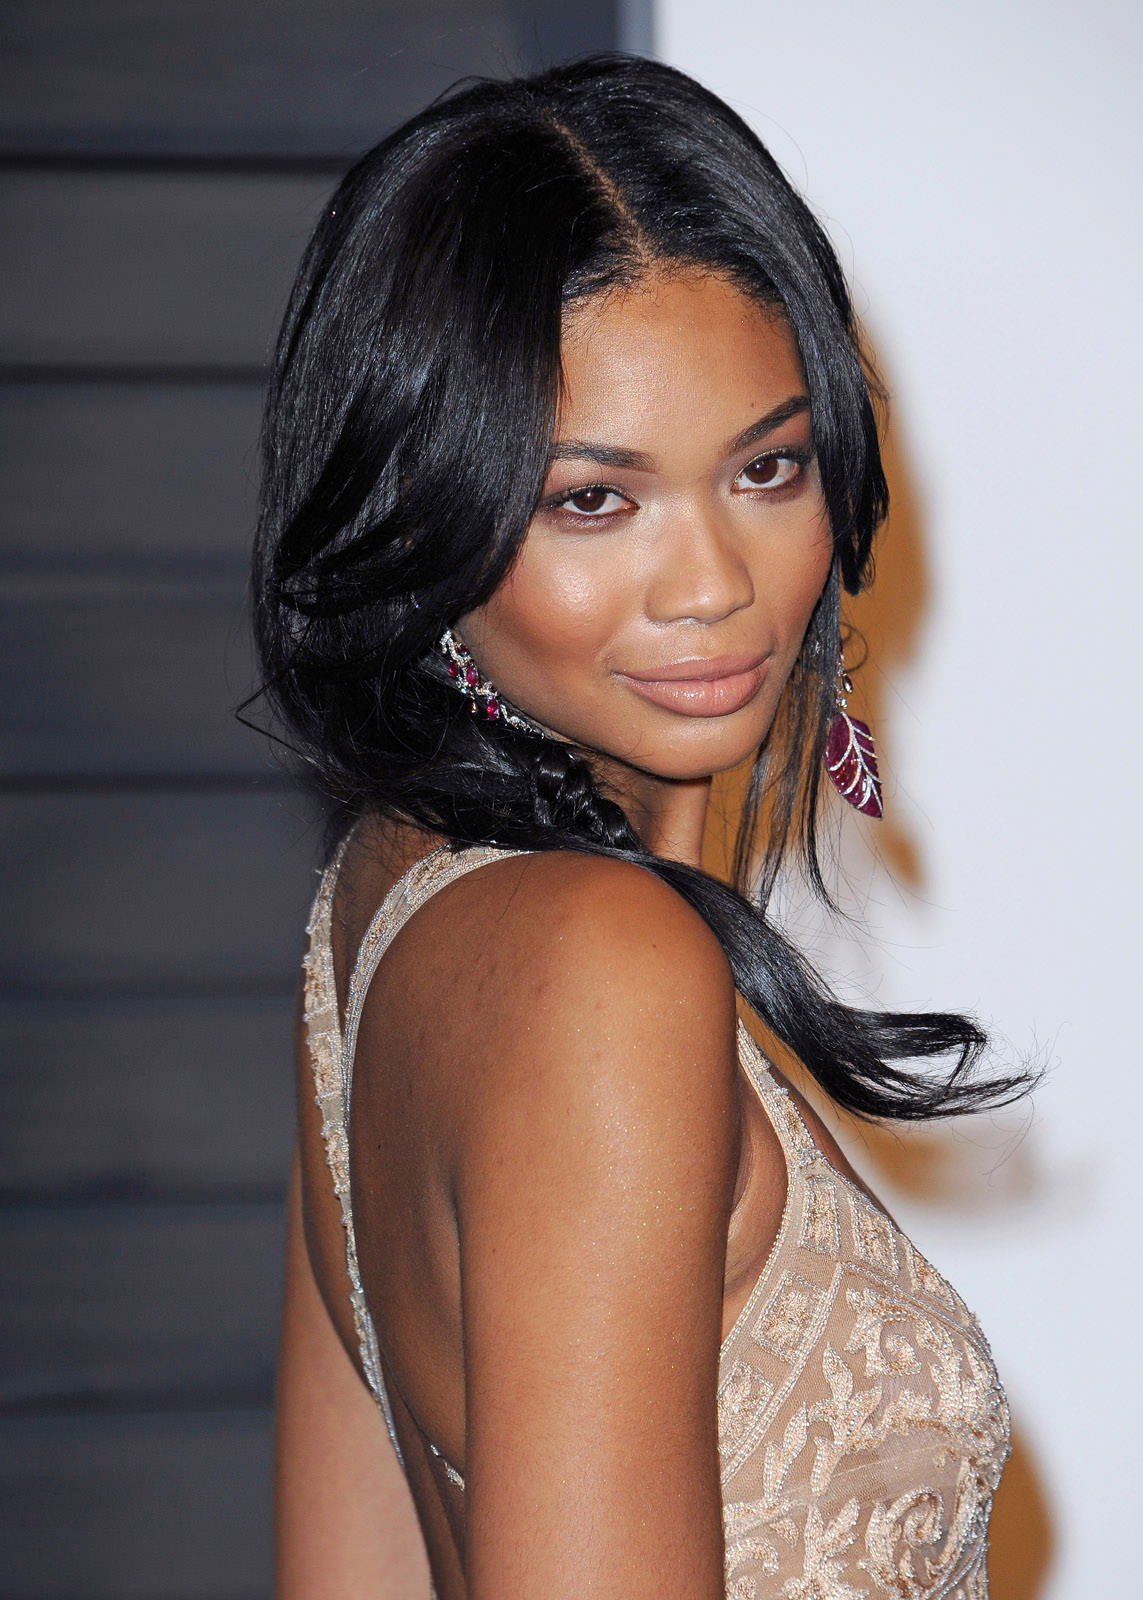 Chanel Iman Photo Gallery